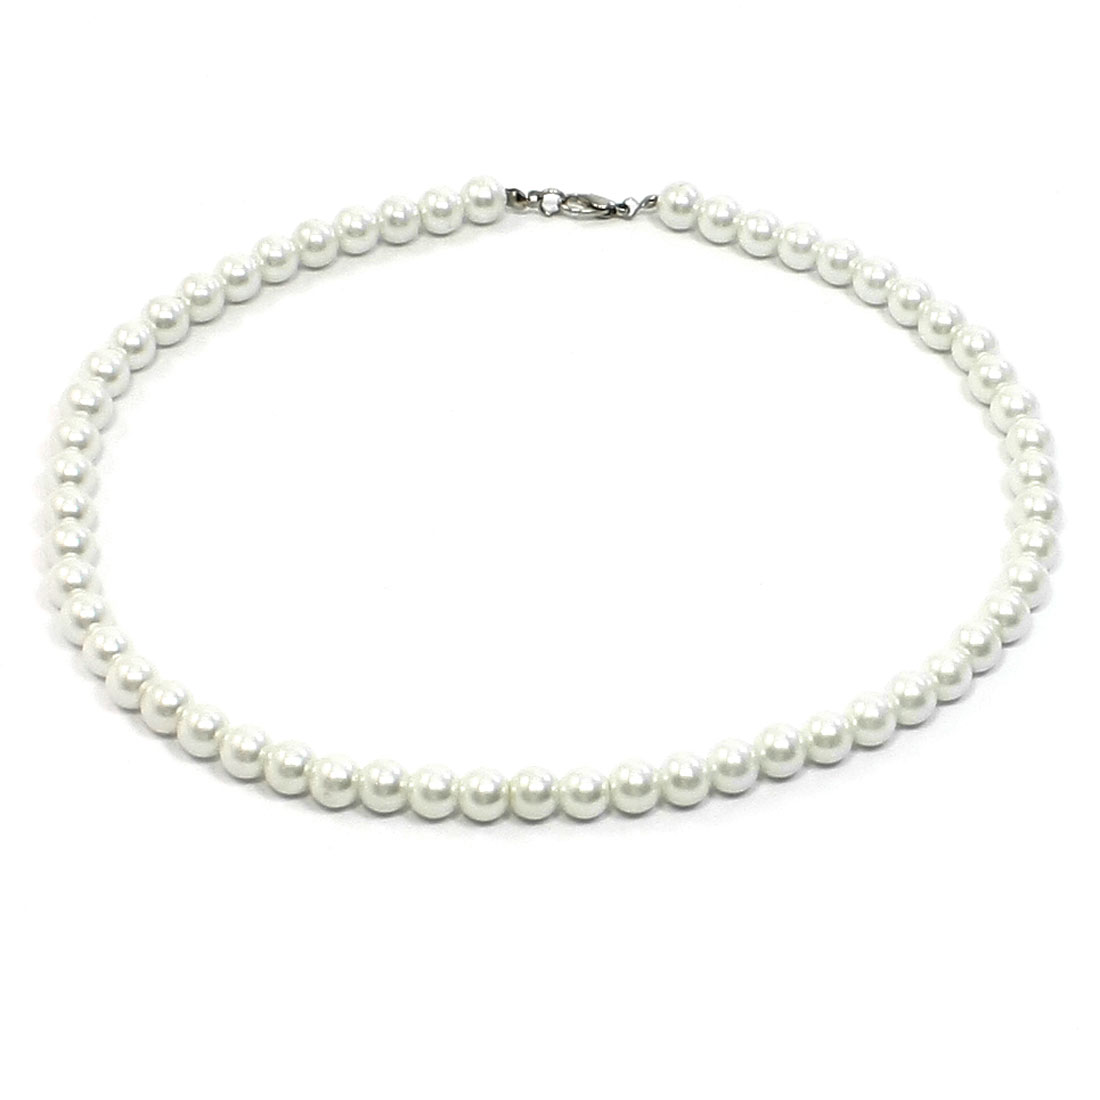 Manmade White Faux Pearl Necklace Metal Clasp Costume Jewelry